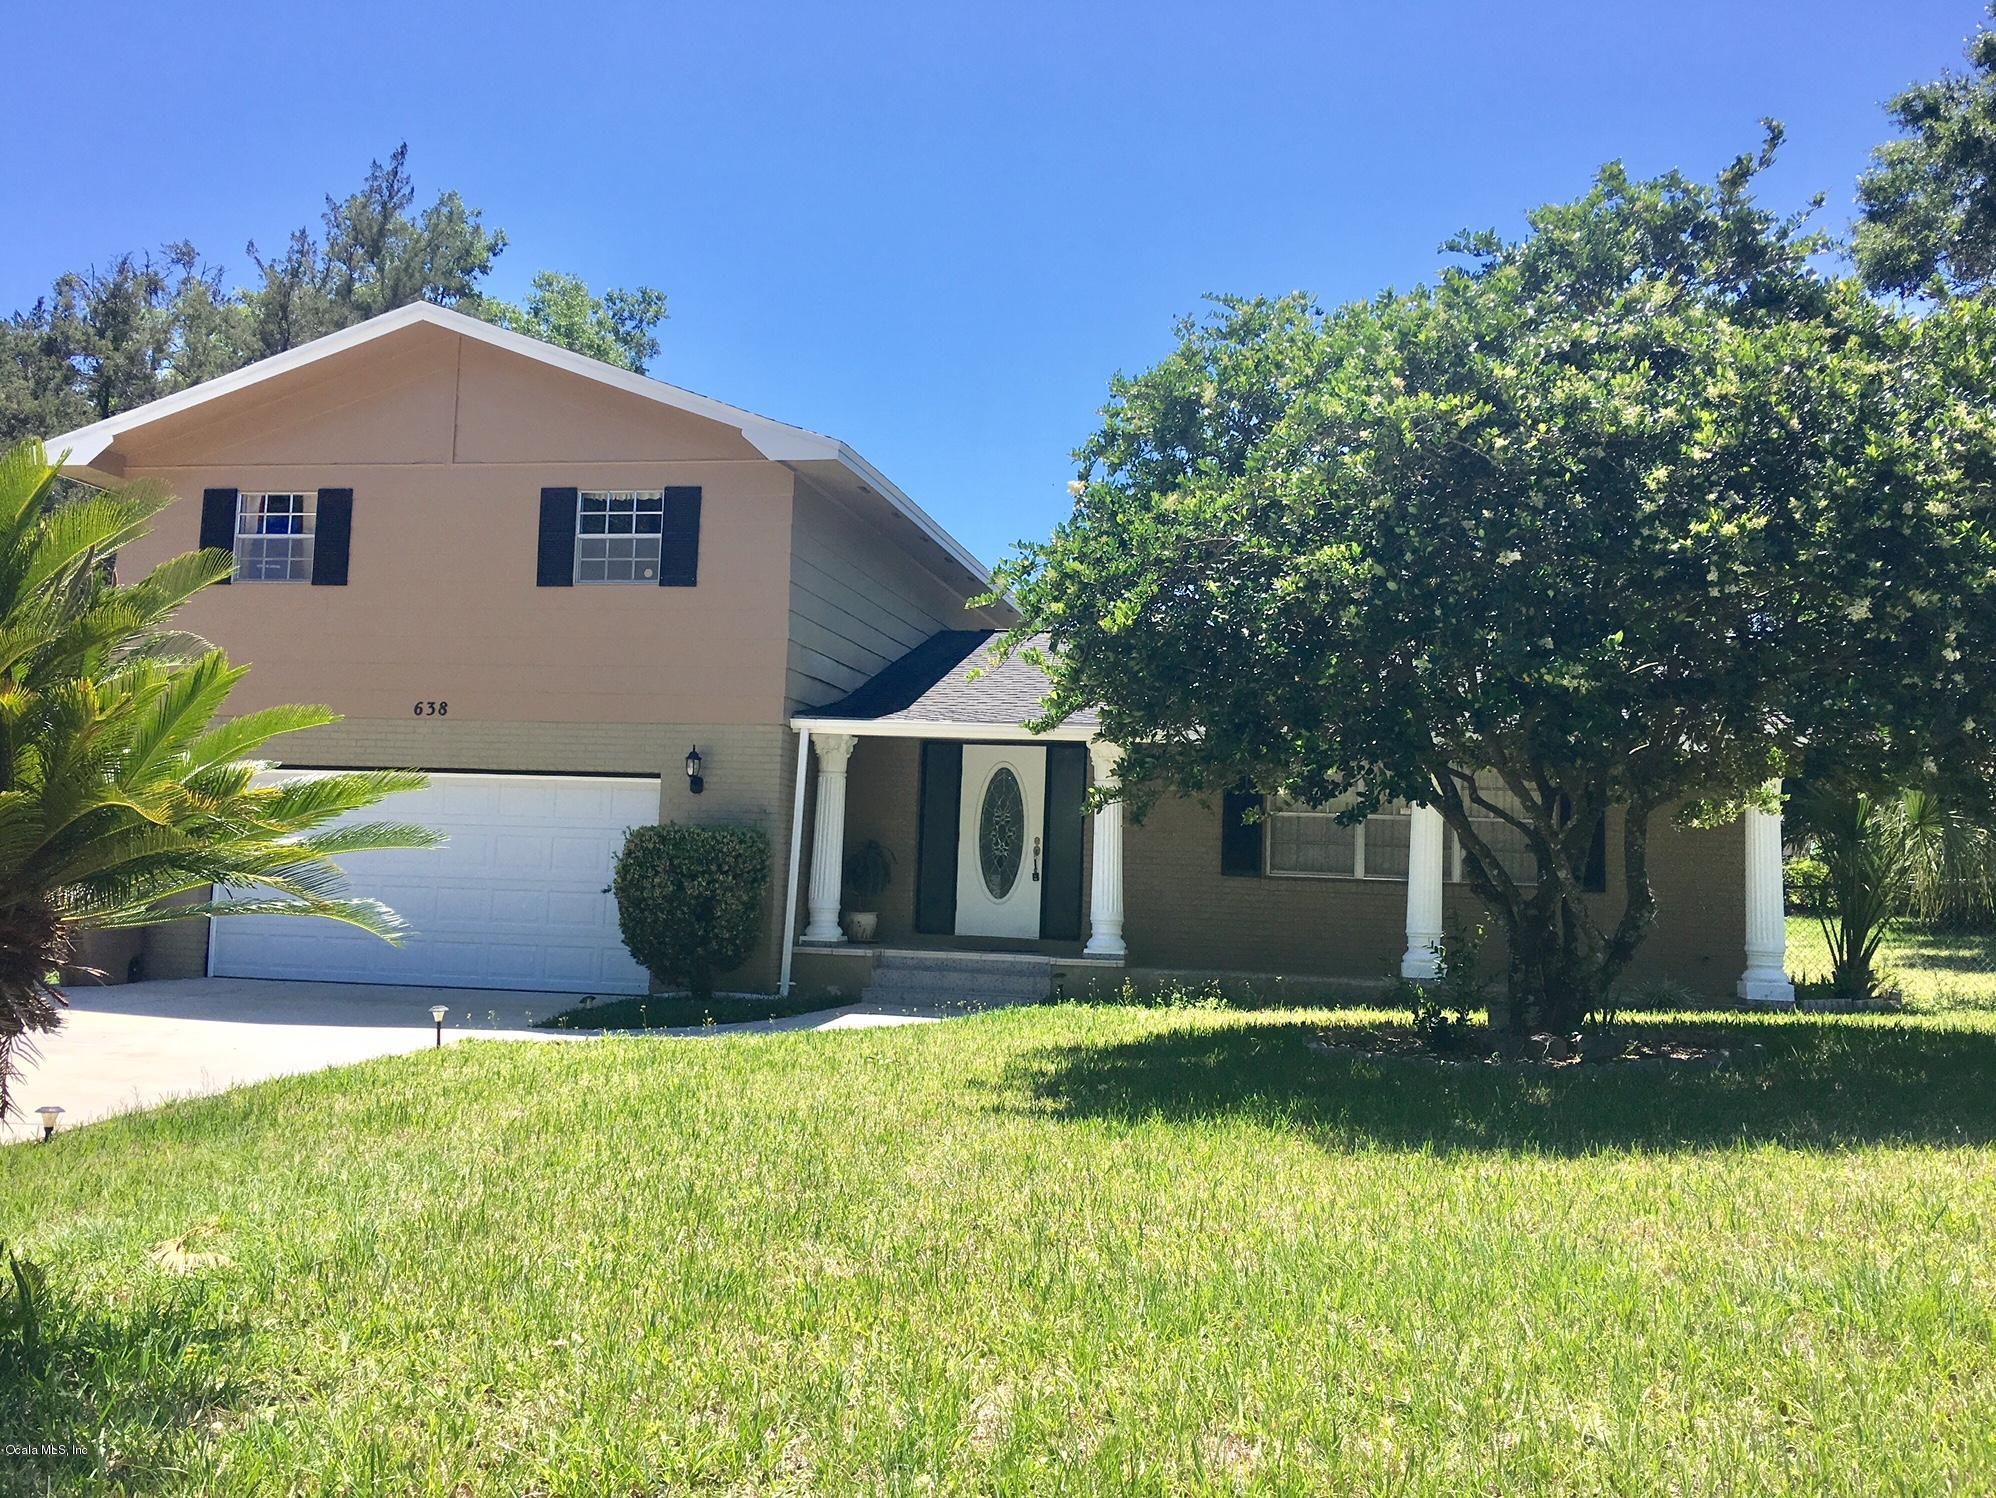 638 SE 17TH PLACE, OCALA, FL 34471